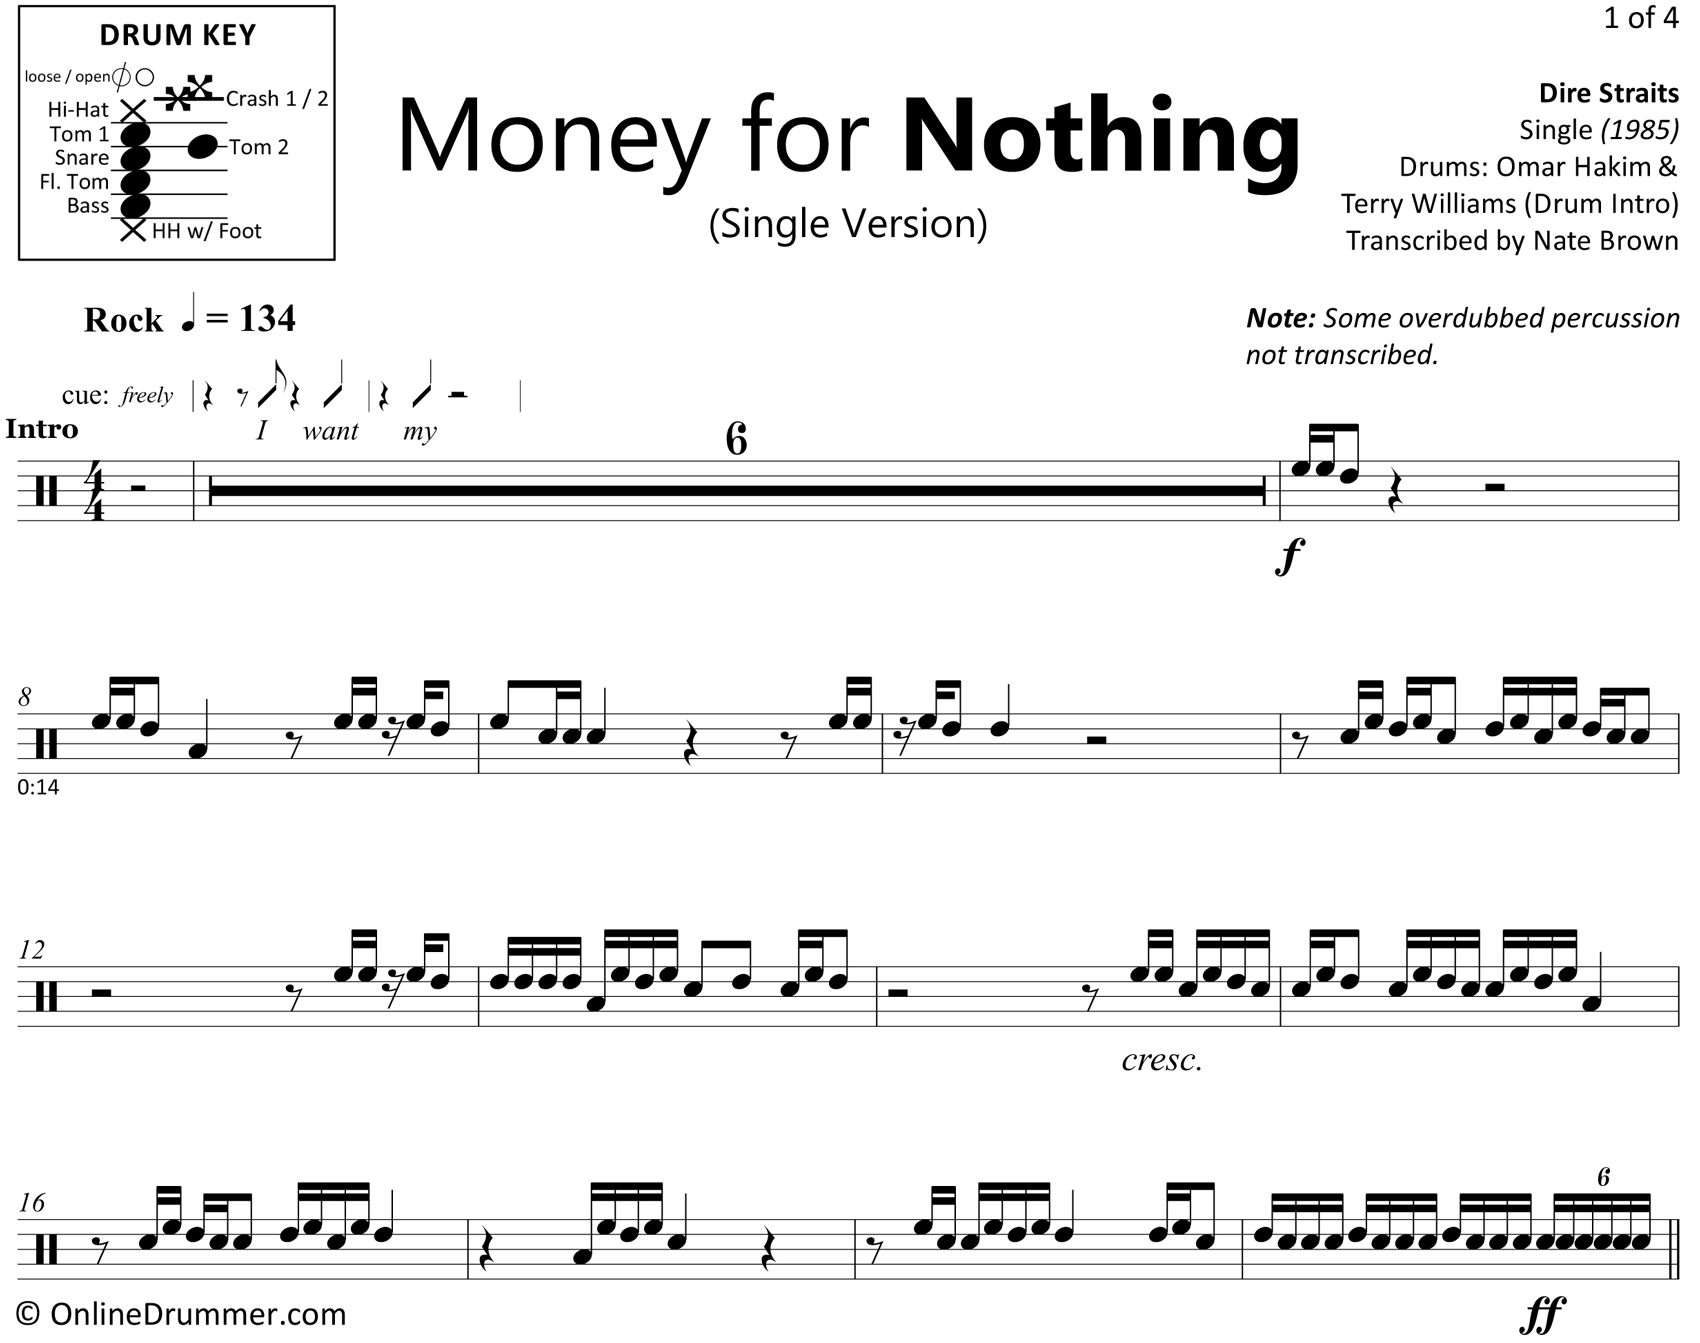 Money For Nothing - Single Version